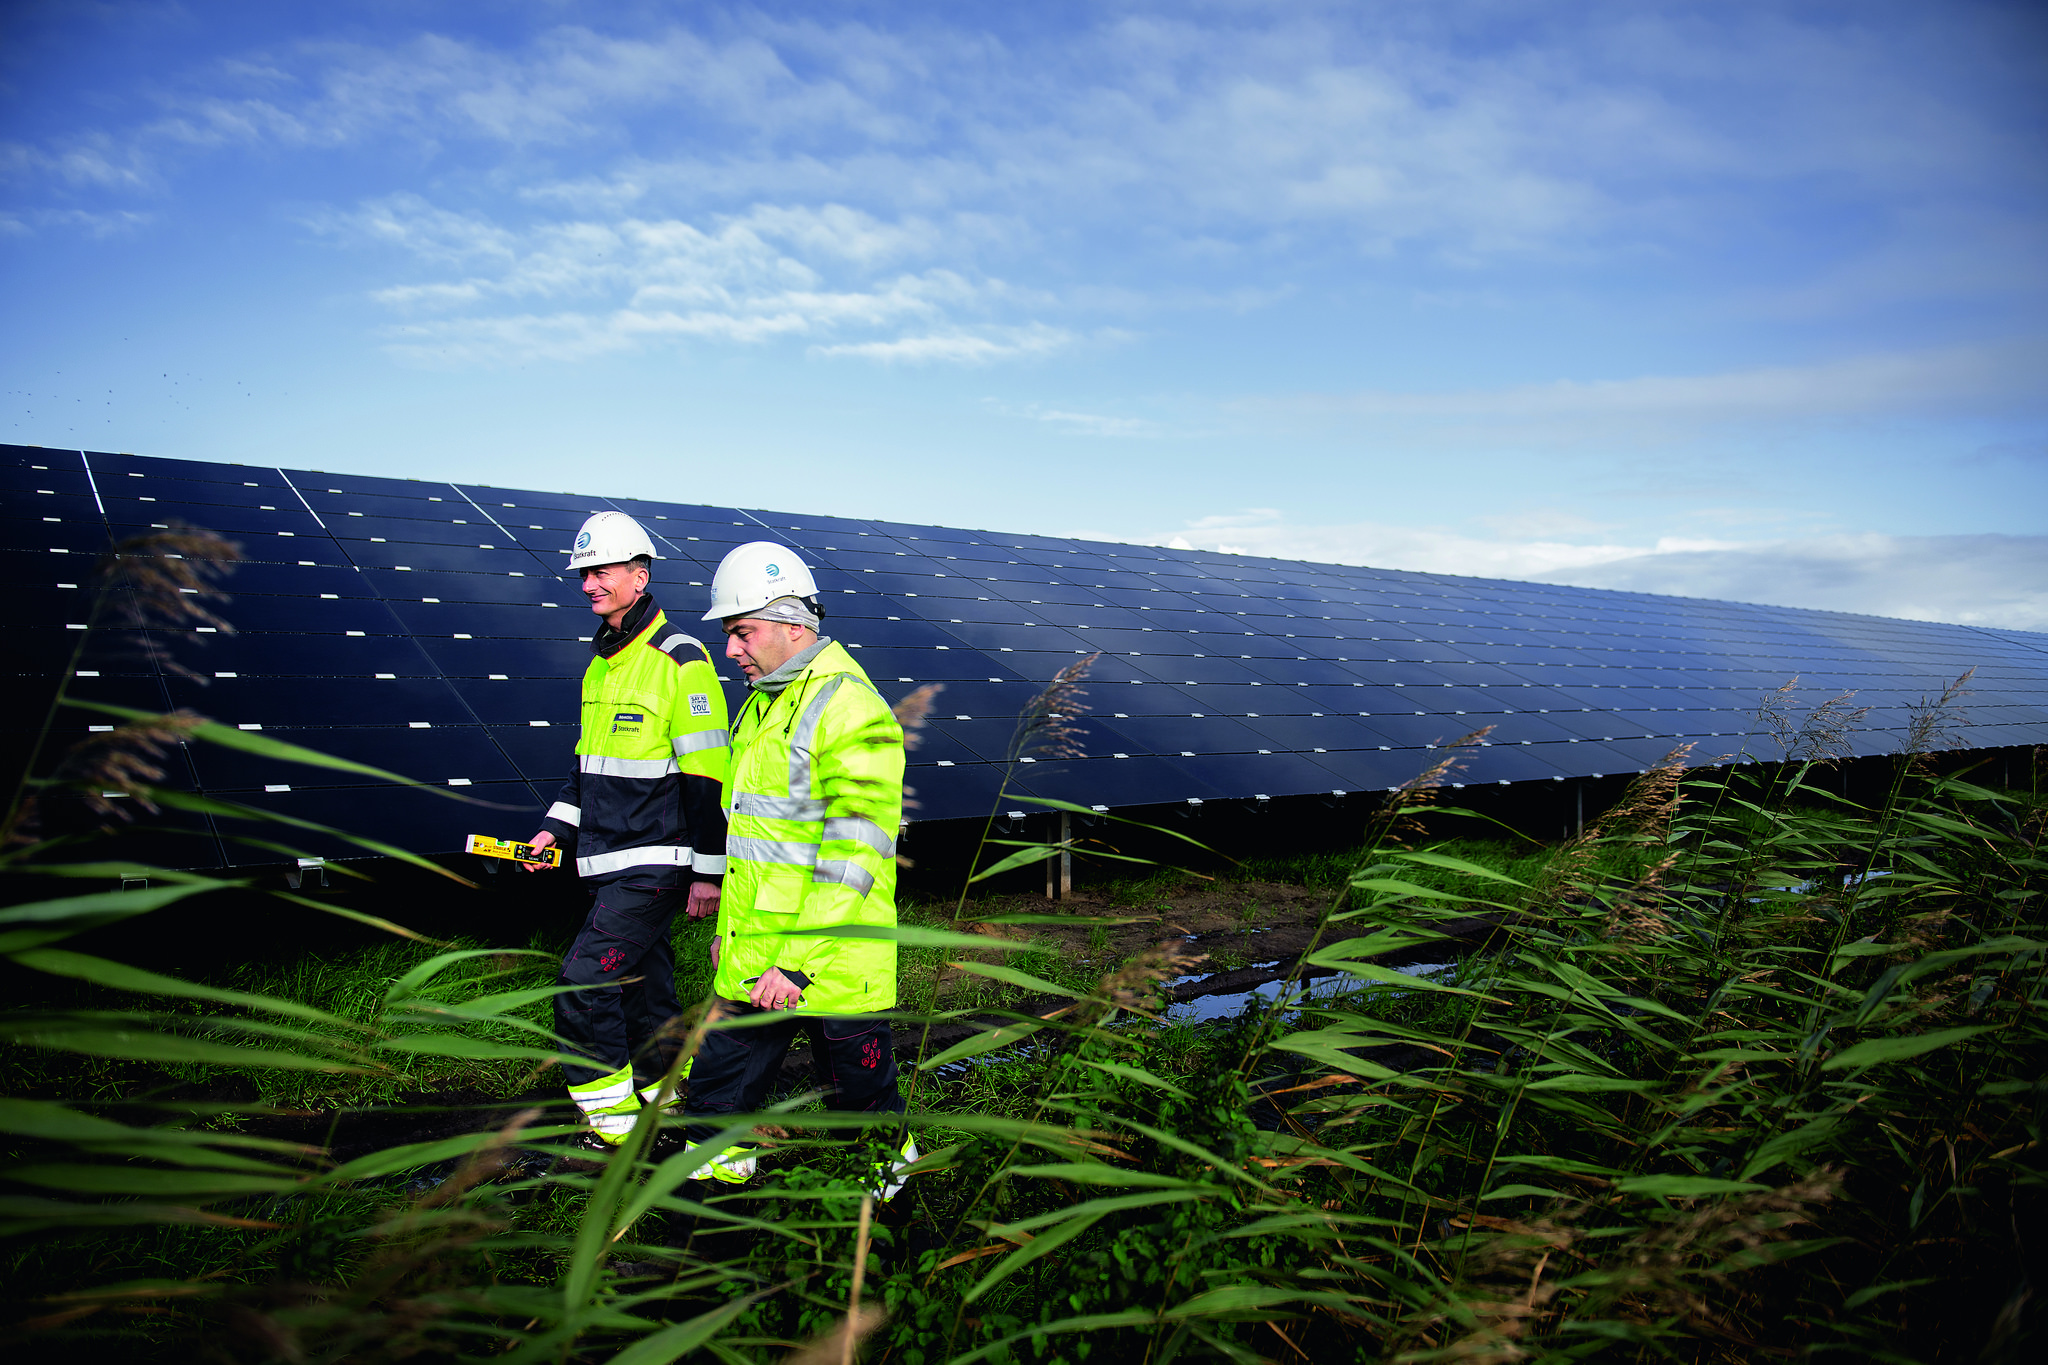 Two Statkraft workers at Lange Runde solar park